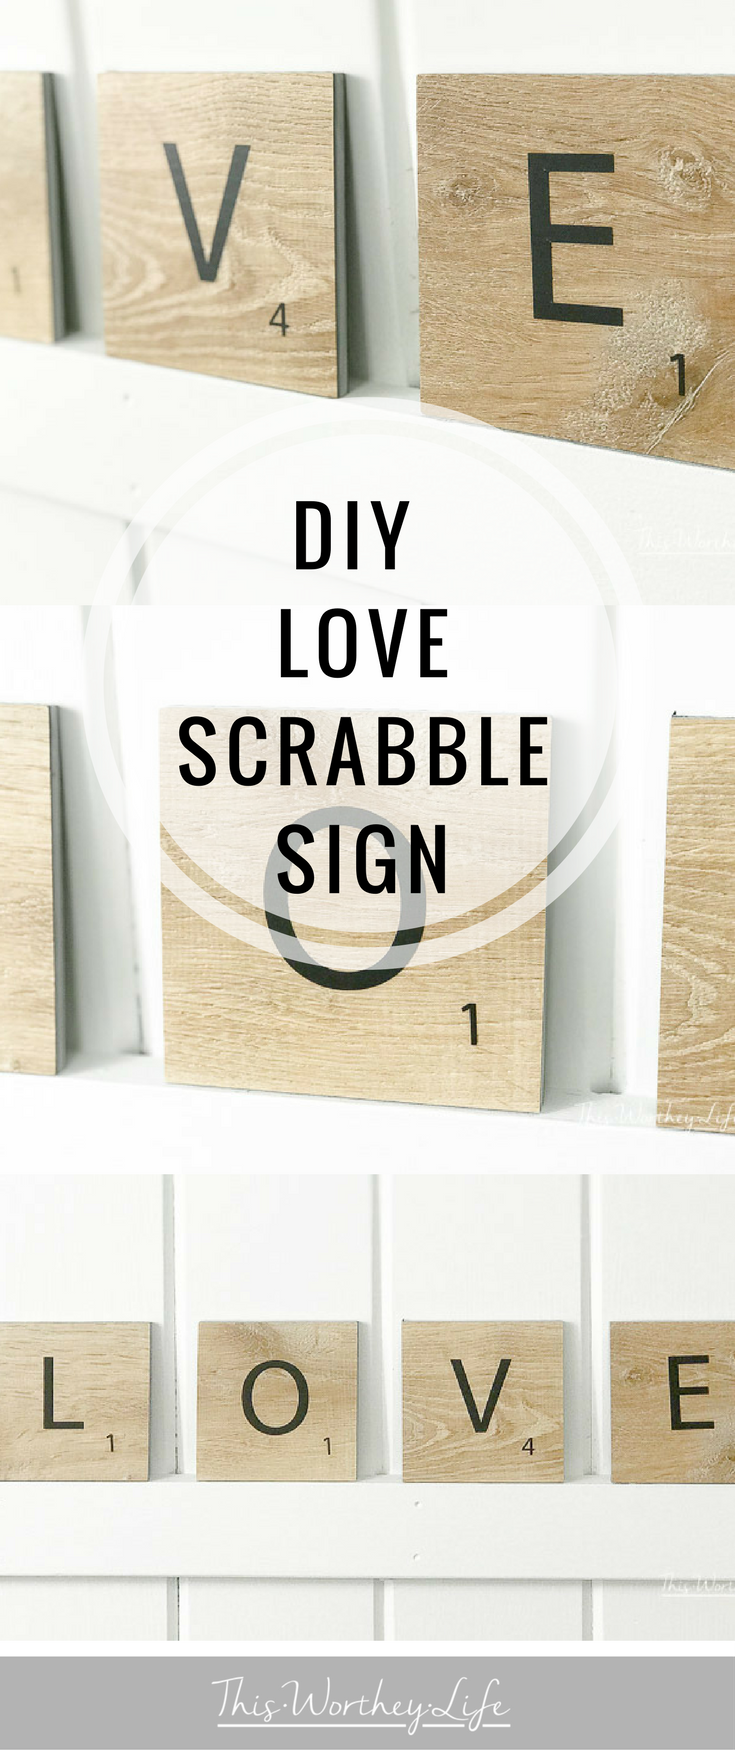 This easy DIY project is one you can do in about 30 minutes. Using wood letter tiles, you can easily make a Scrabble-type sign to use as a beautiful home decor piece. Learn how to make a Love sign out of Scrabble wood tiles using your Cricut on the blog!